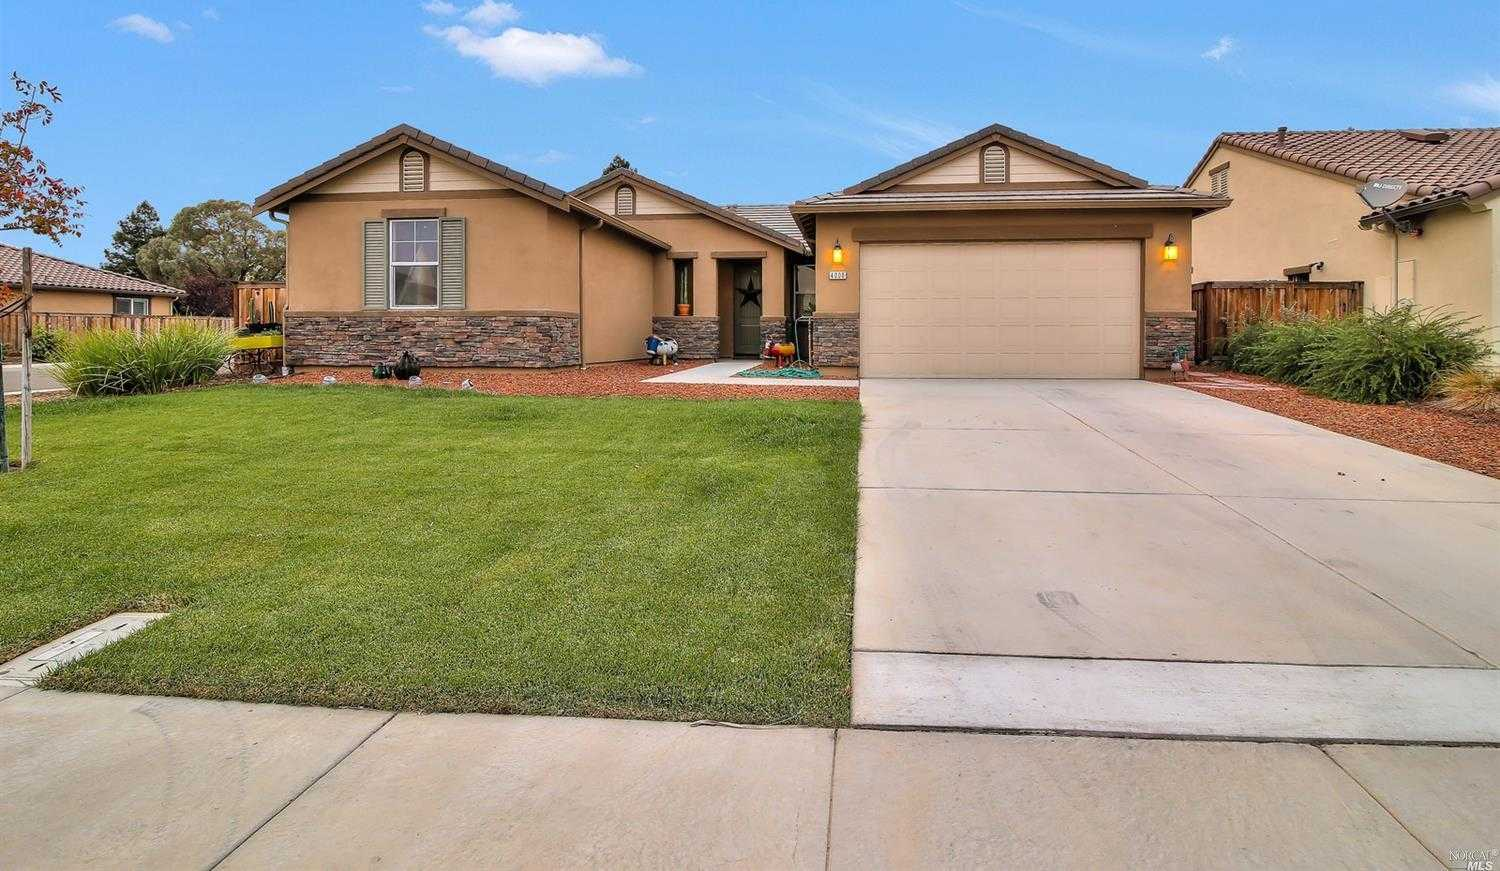 $588,888 - 4Br/2Ba -  for Sale in Vacaville